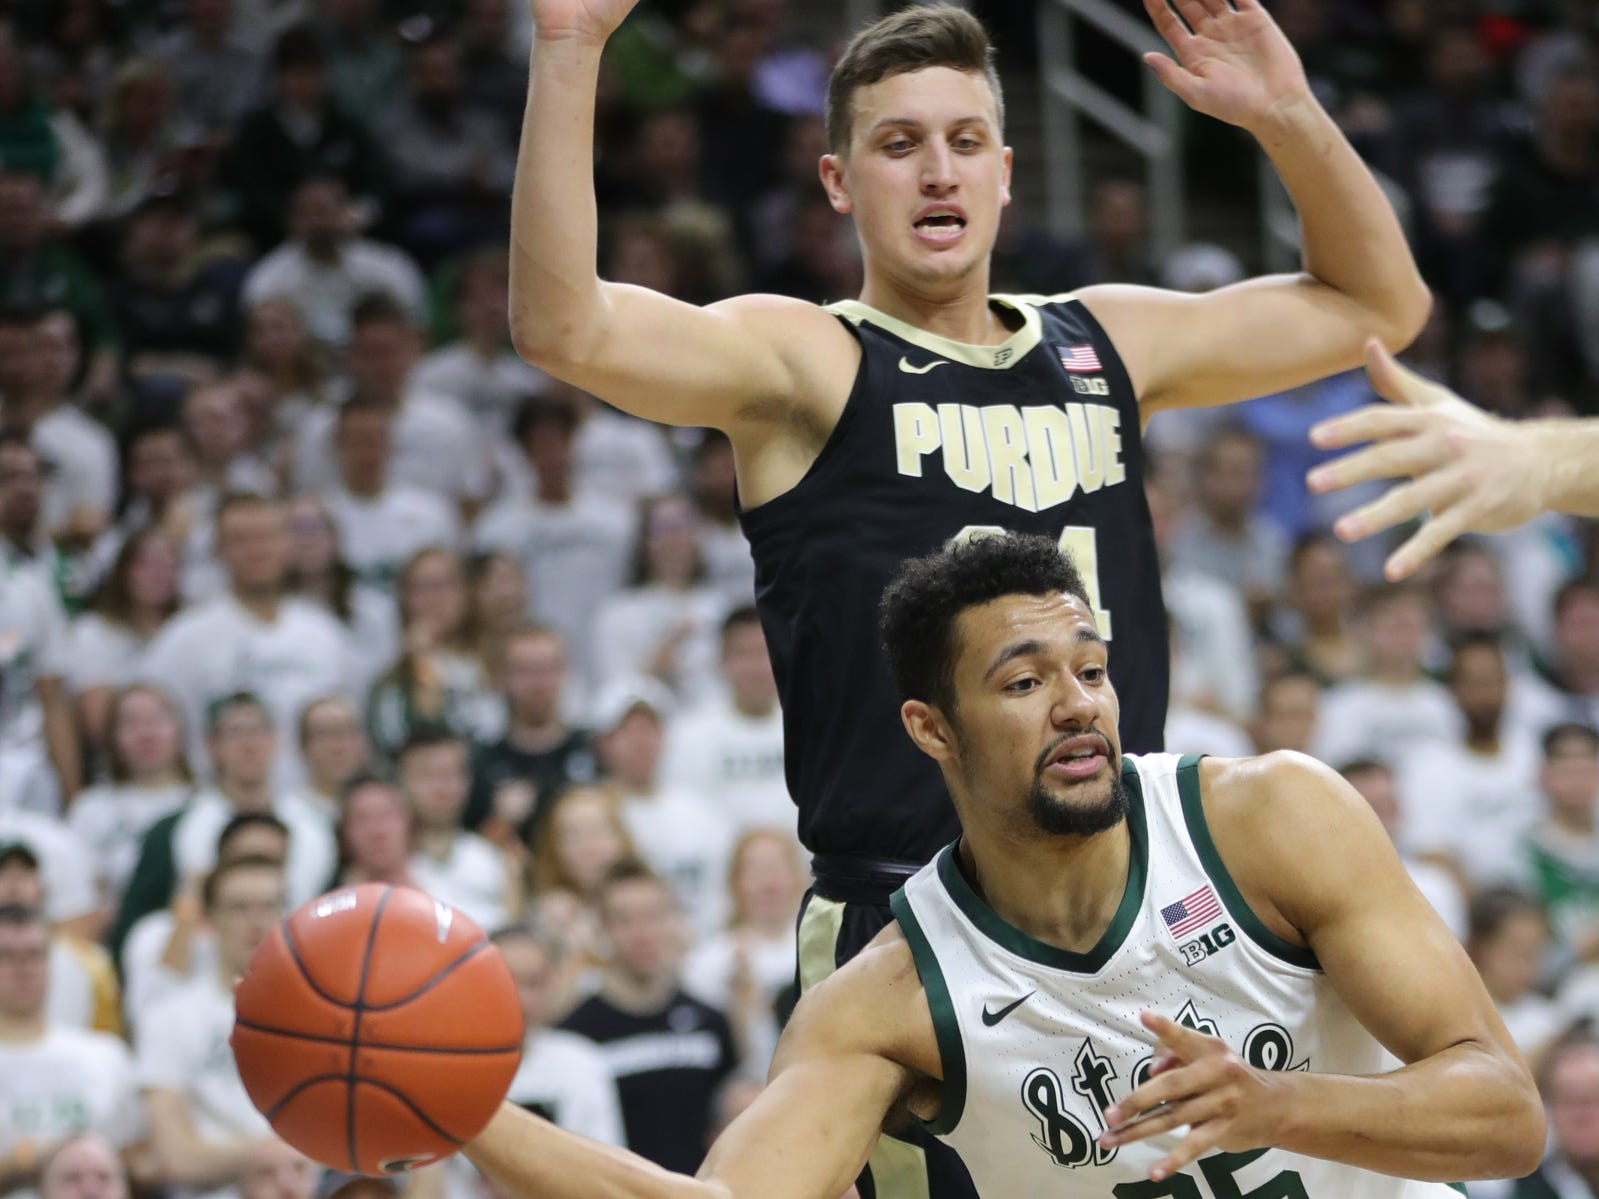 Michigan State forward Kenny Goins drives by Purdue forward Grady Eifert during first half action Tuesday, September 8, 2019 at the Breslin Center in East Lansing, Mich.